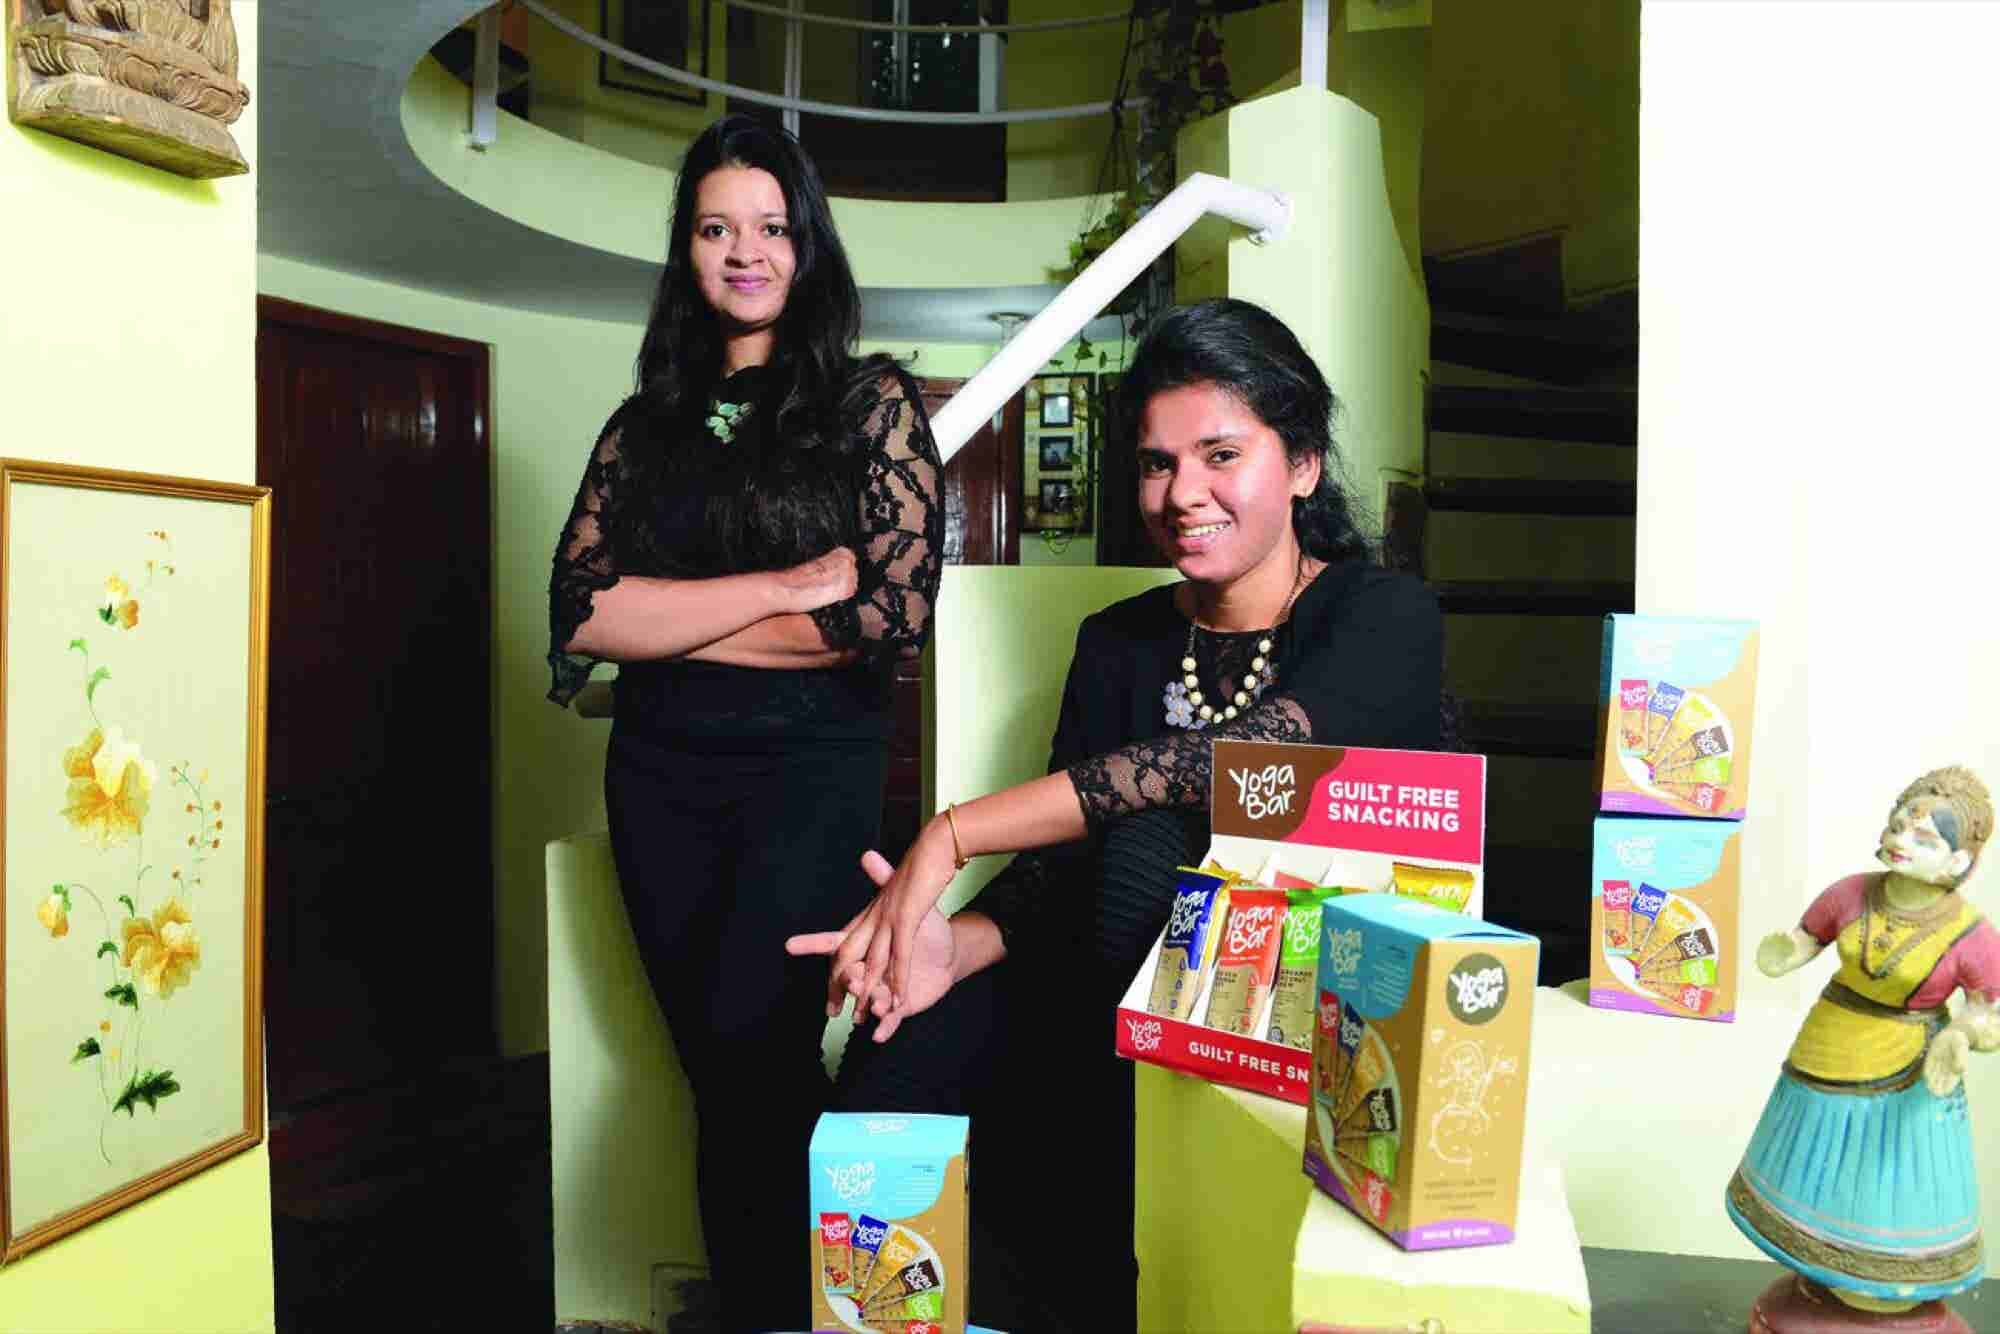 During Trekking, When Sampat Sisters Devised a Breakthrough Idea of Providing Energy Through Bars